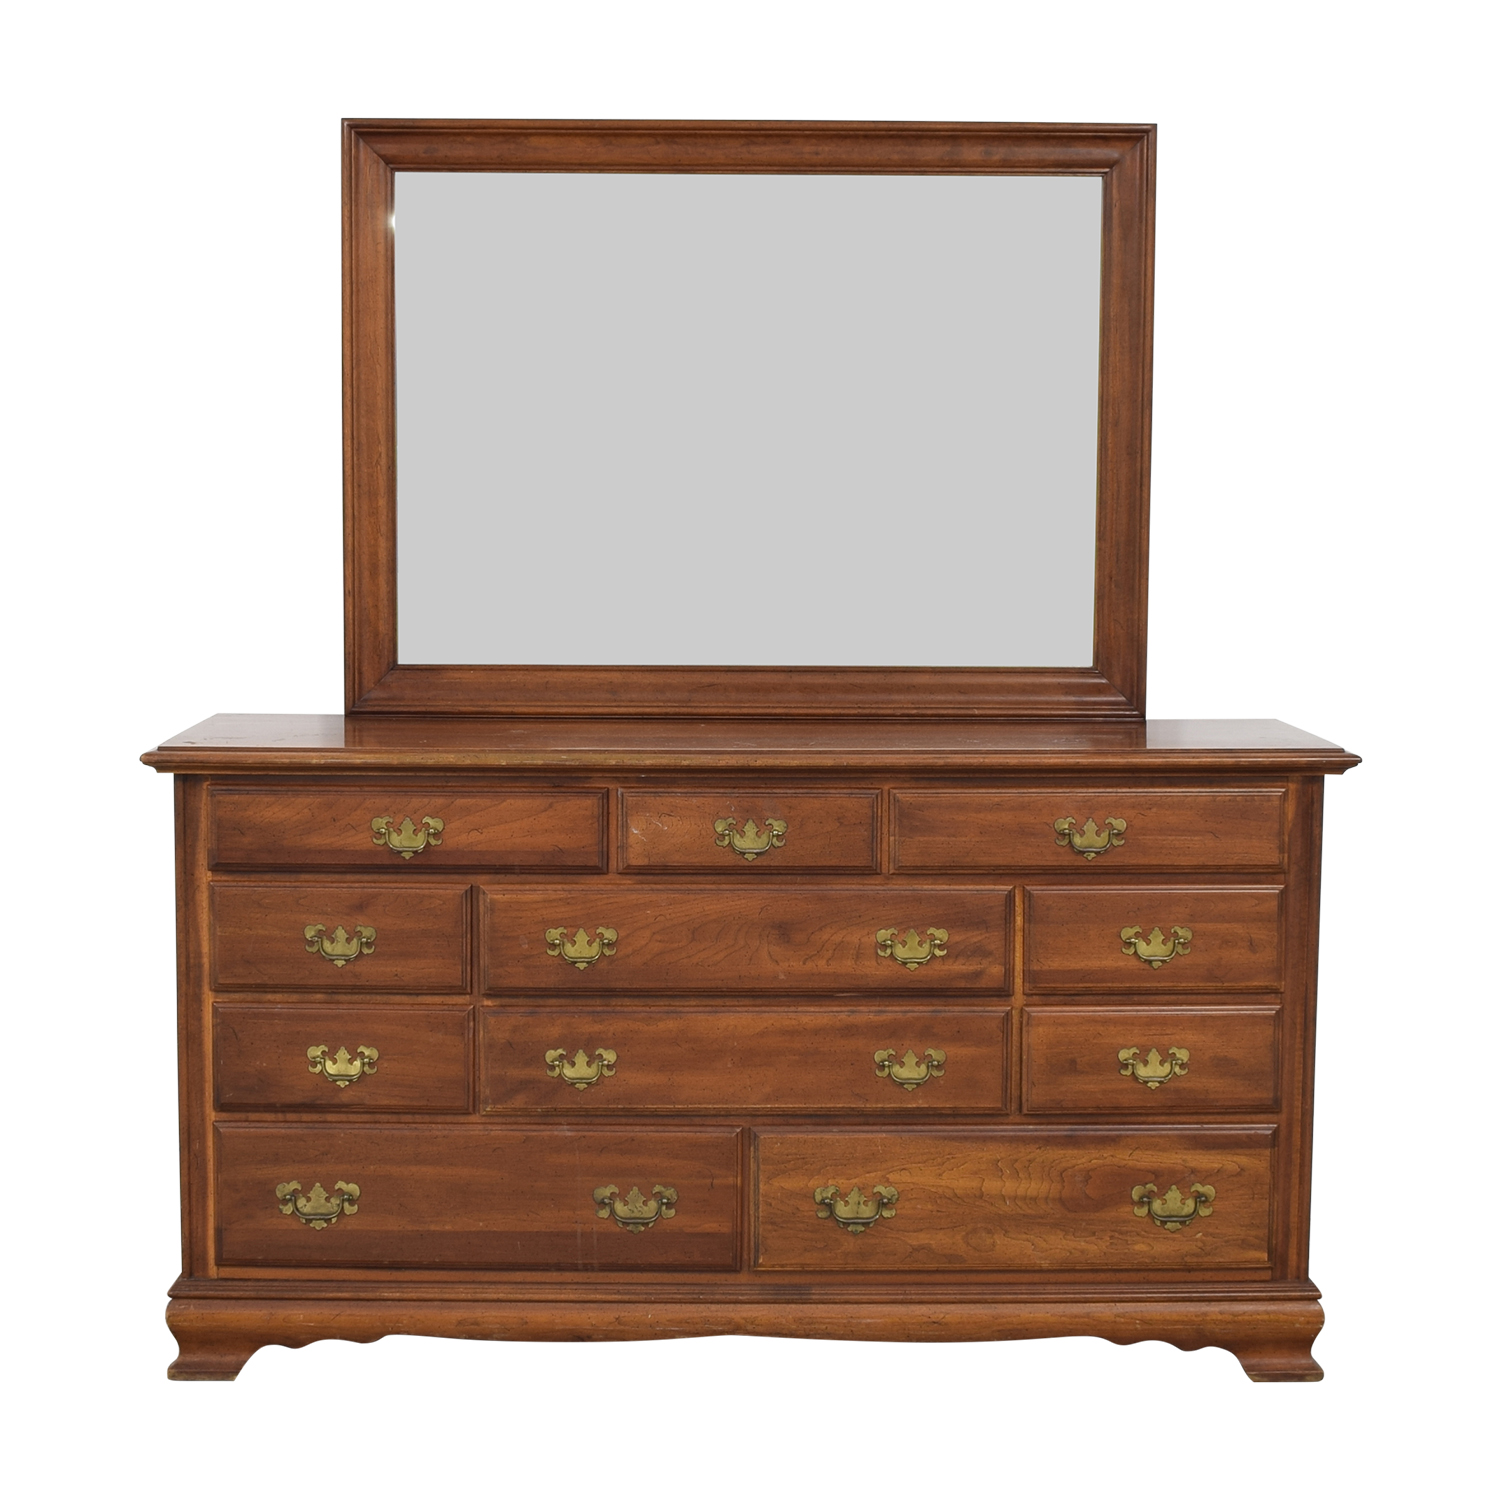 Pennsylvania House Dresser with Mirror Pennsylvania House